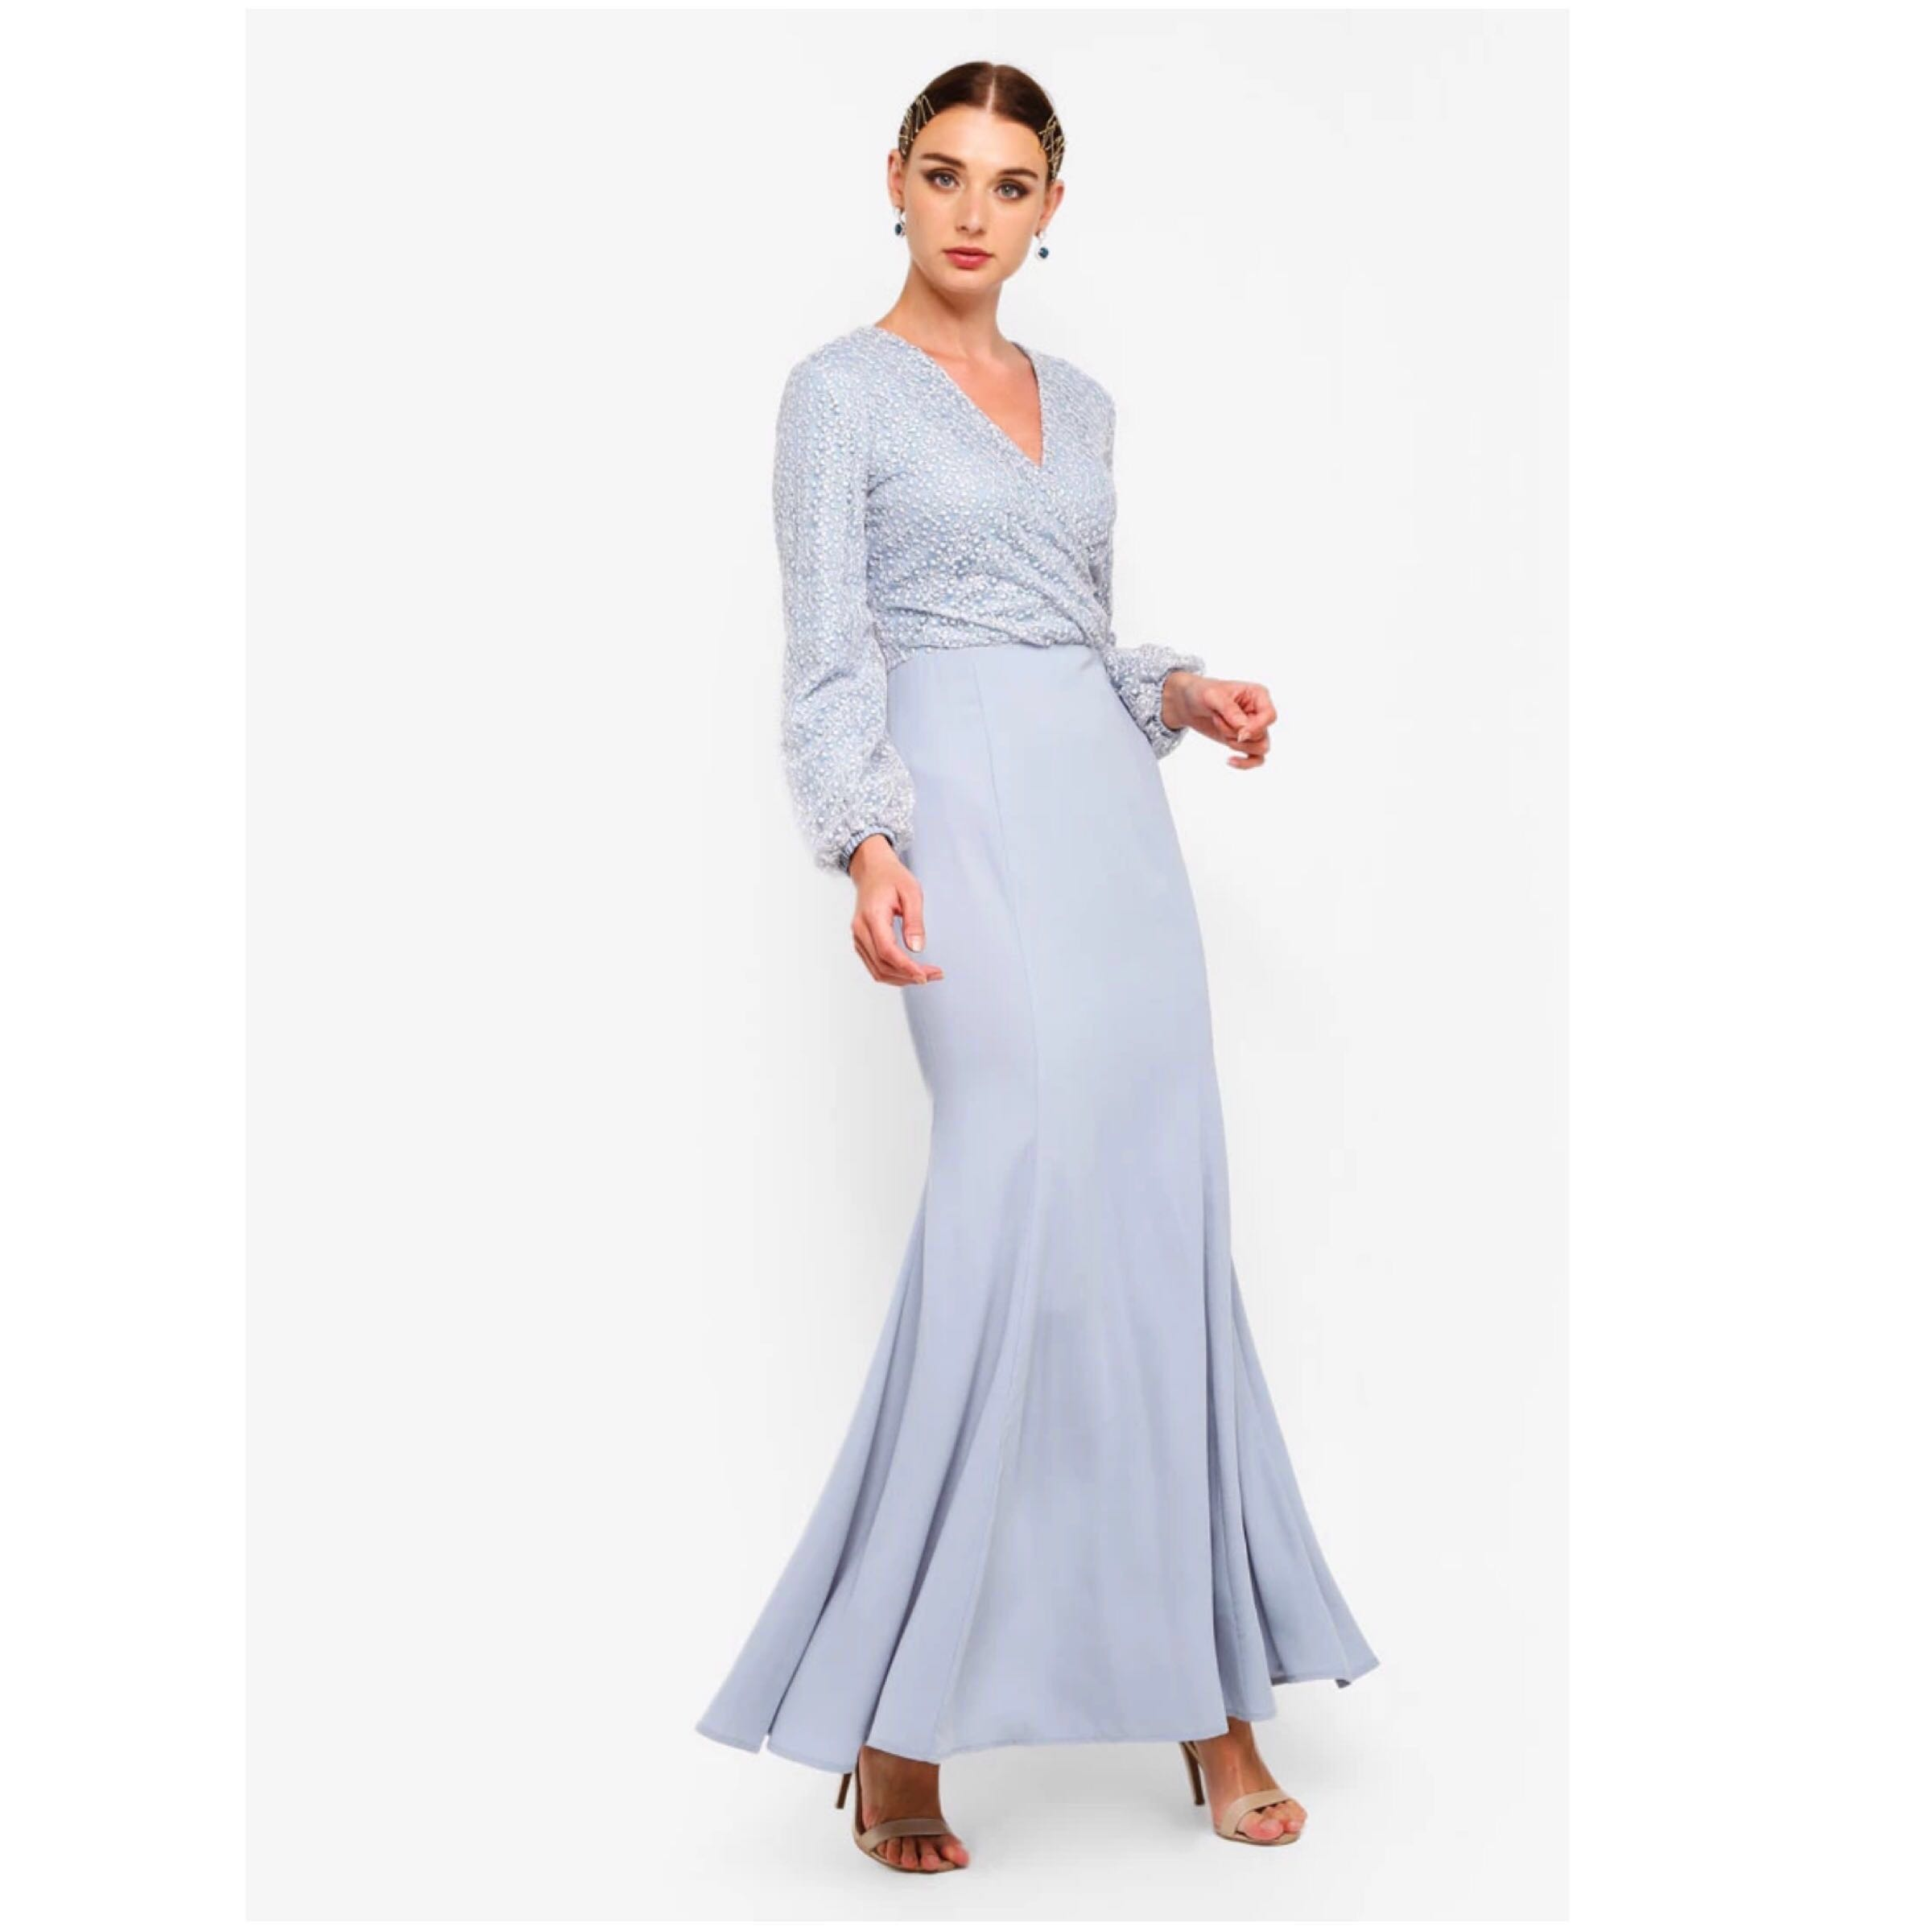 Ramadan Malay Wedding Guest Dress Embroidered Lace Wrap Mermaid Dress Gown In Baby Blue For Dinner Occasions Modest Wear Size Xs